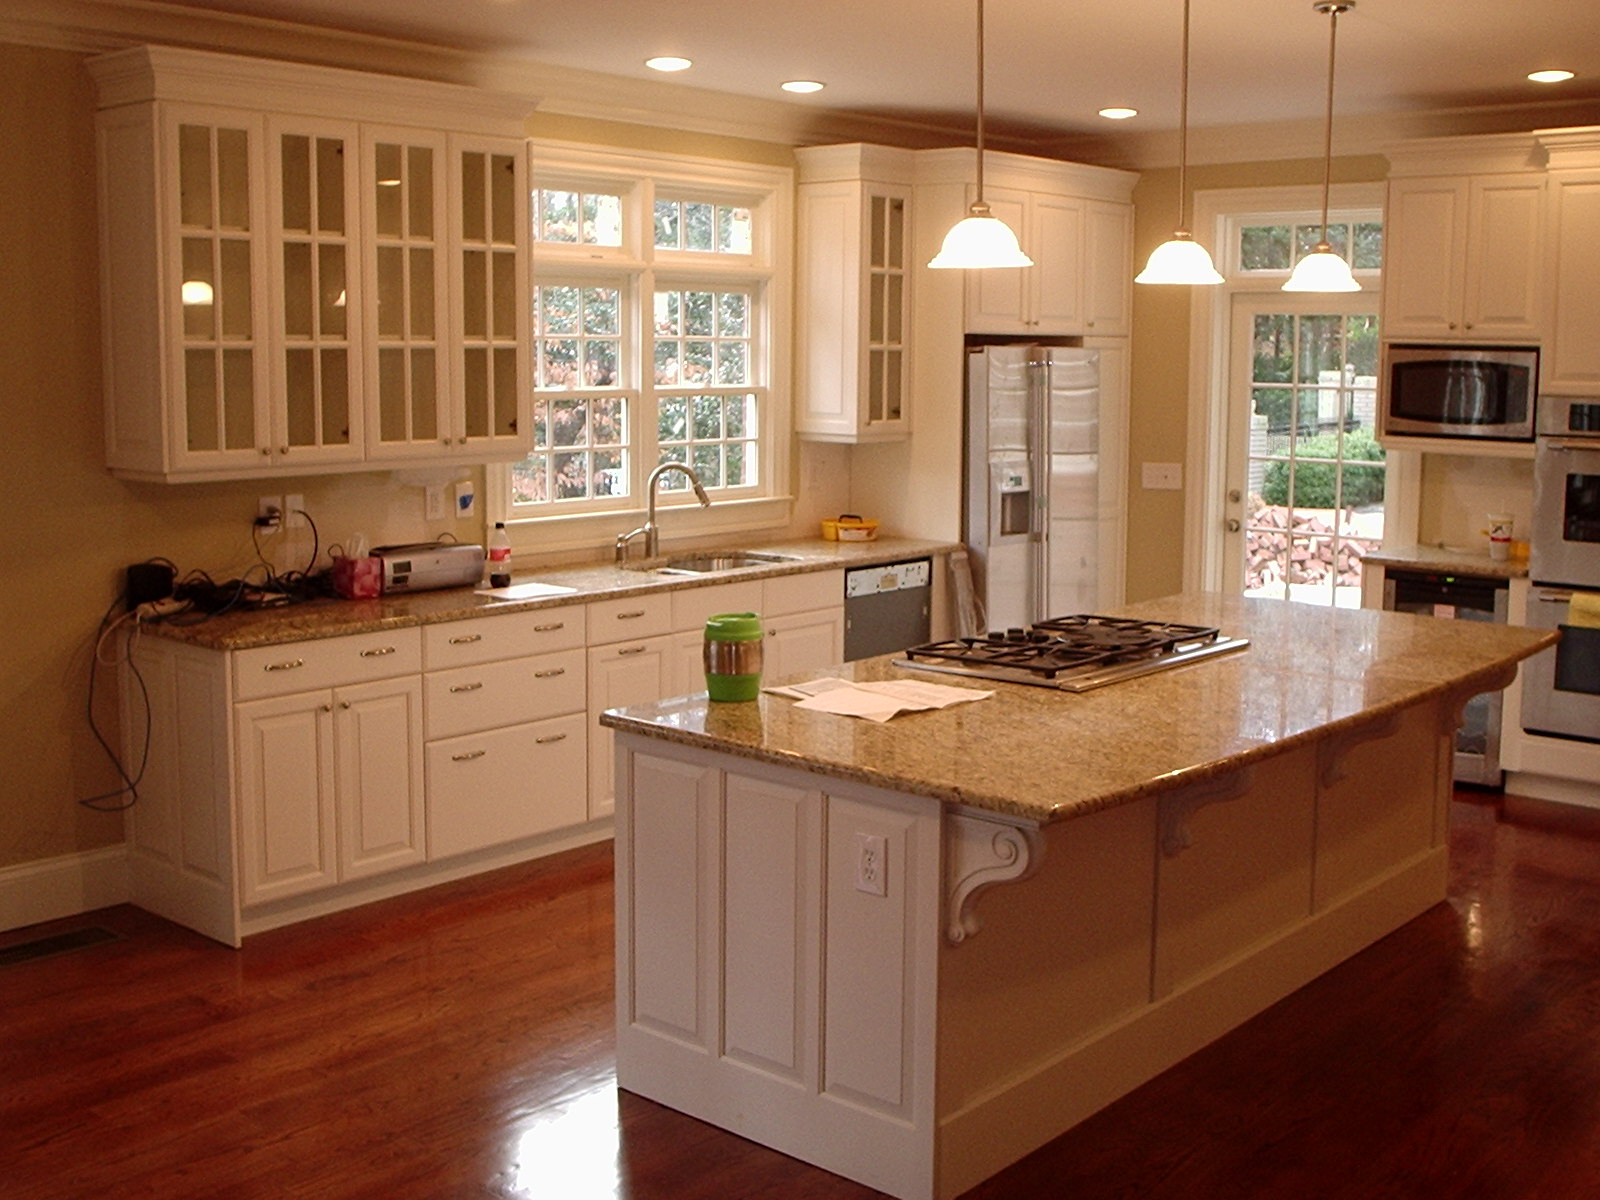 How to select Kitchen Cabinets – Interior Designing Ideas